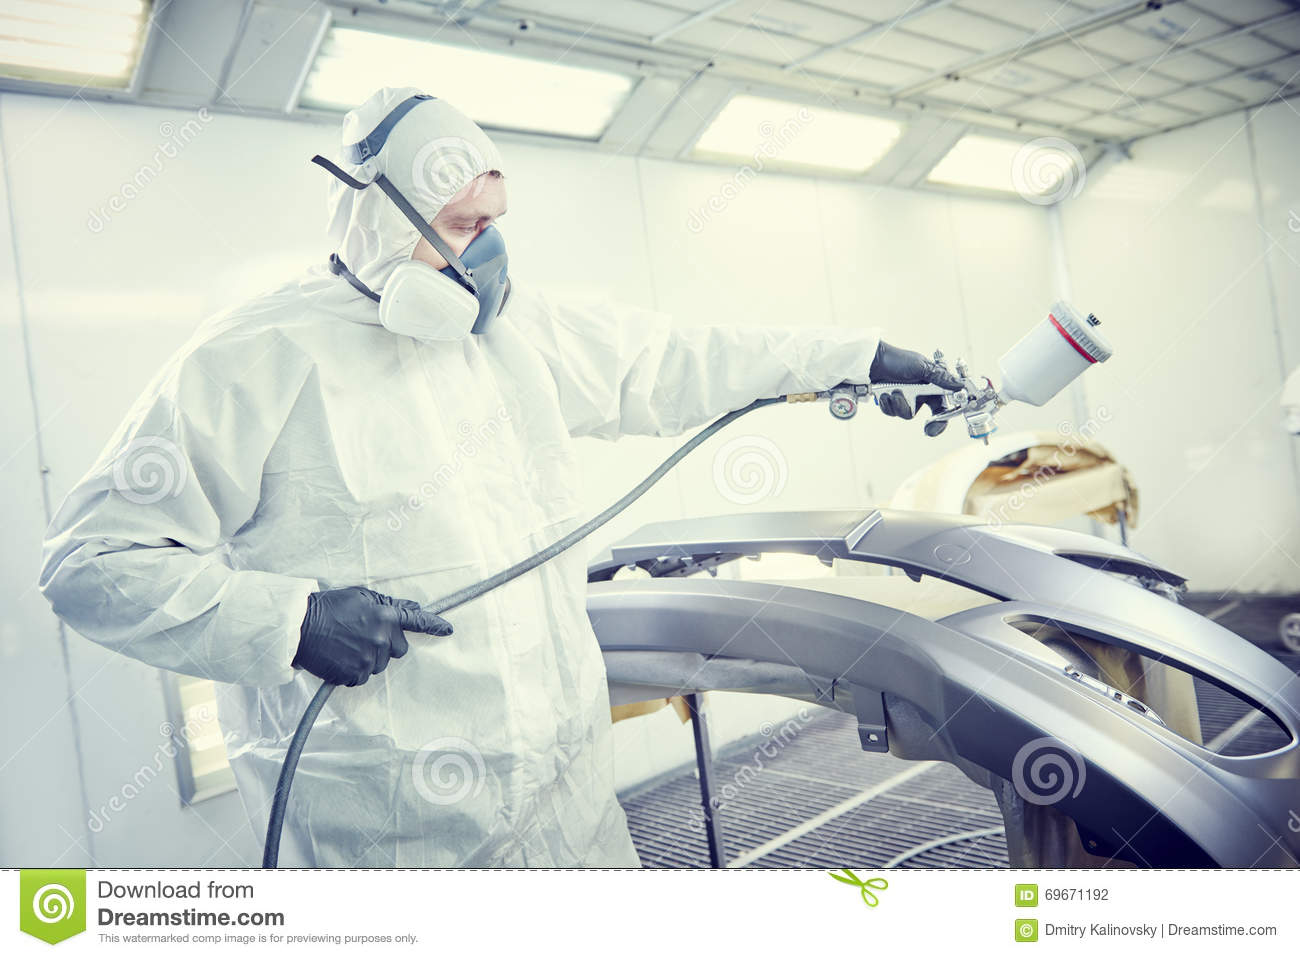 an introduction to the body repairman and an automotive painter In 2003, total automotive body repair and paint services industry revenues climbed to $234 billion this accounted for 2932% of the overall automotive repair industry which had generated approximately $798 billion.